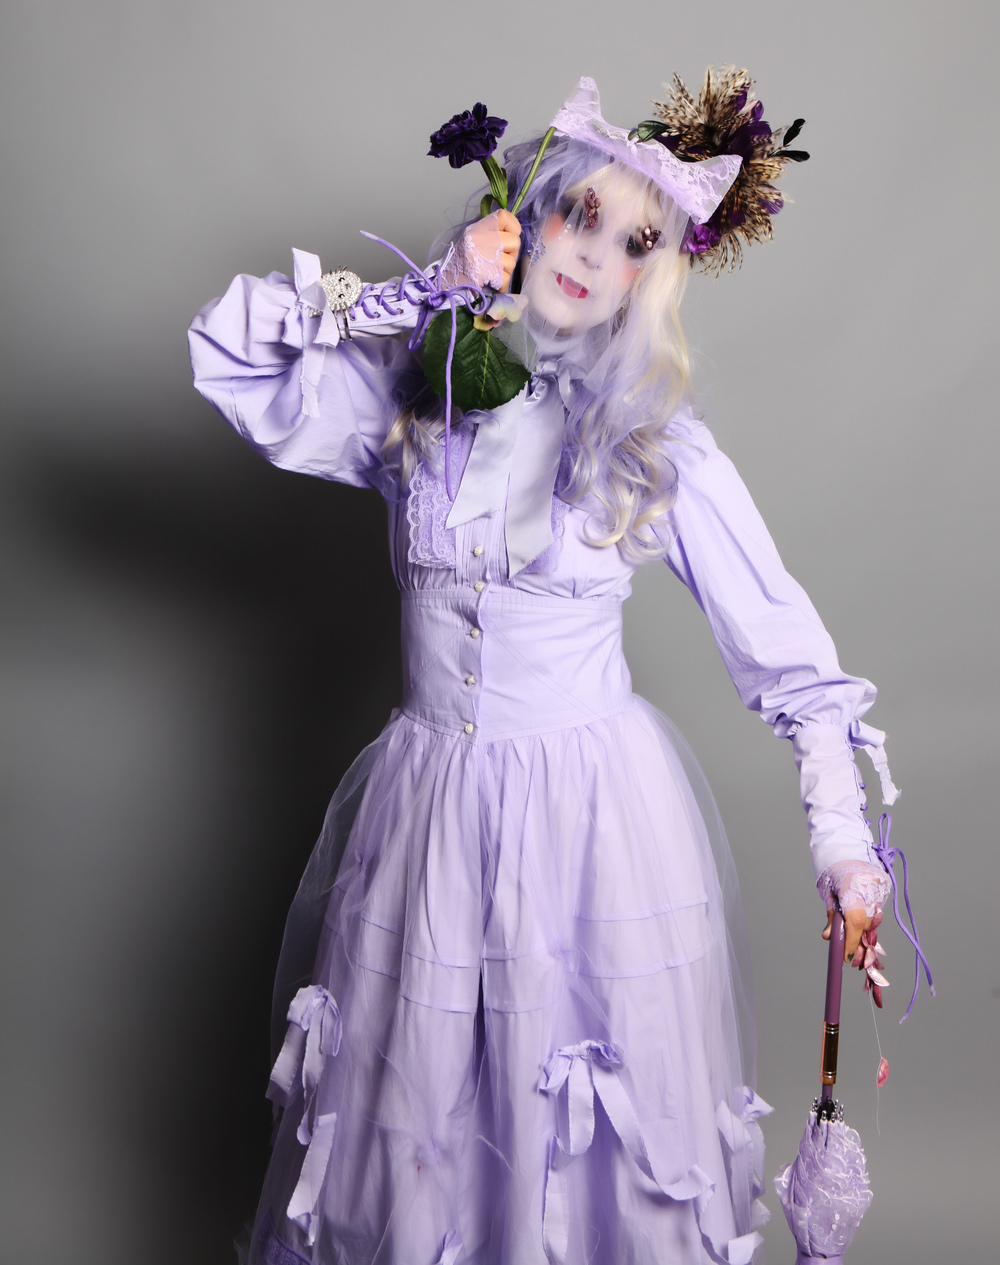 Photography by Beatriz-Fashion-Design-School-Austin-ASFD-Japanese-Harajuku-Fashion-Specialty-Course-shidonori-hydrangea.jpg